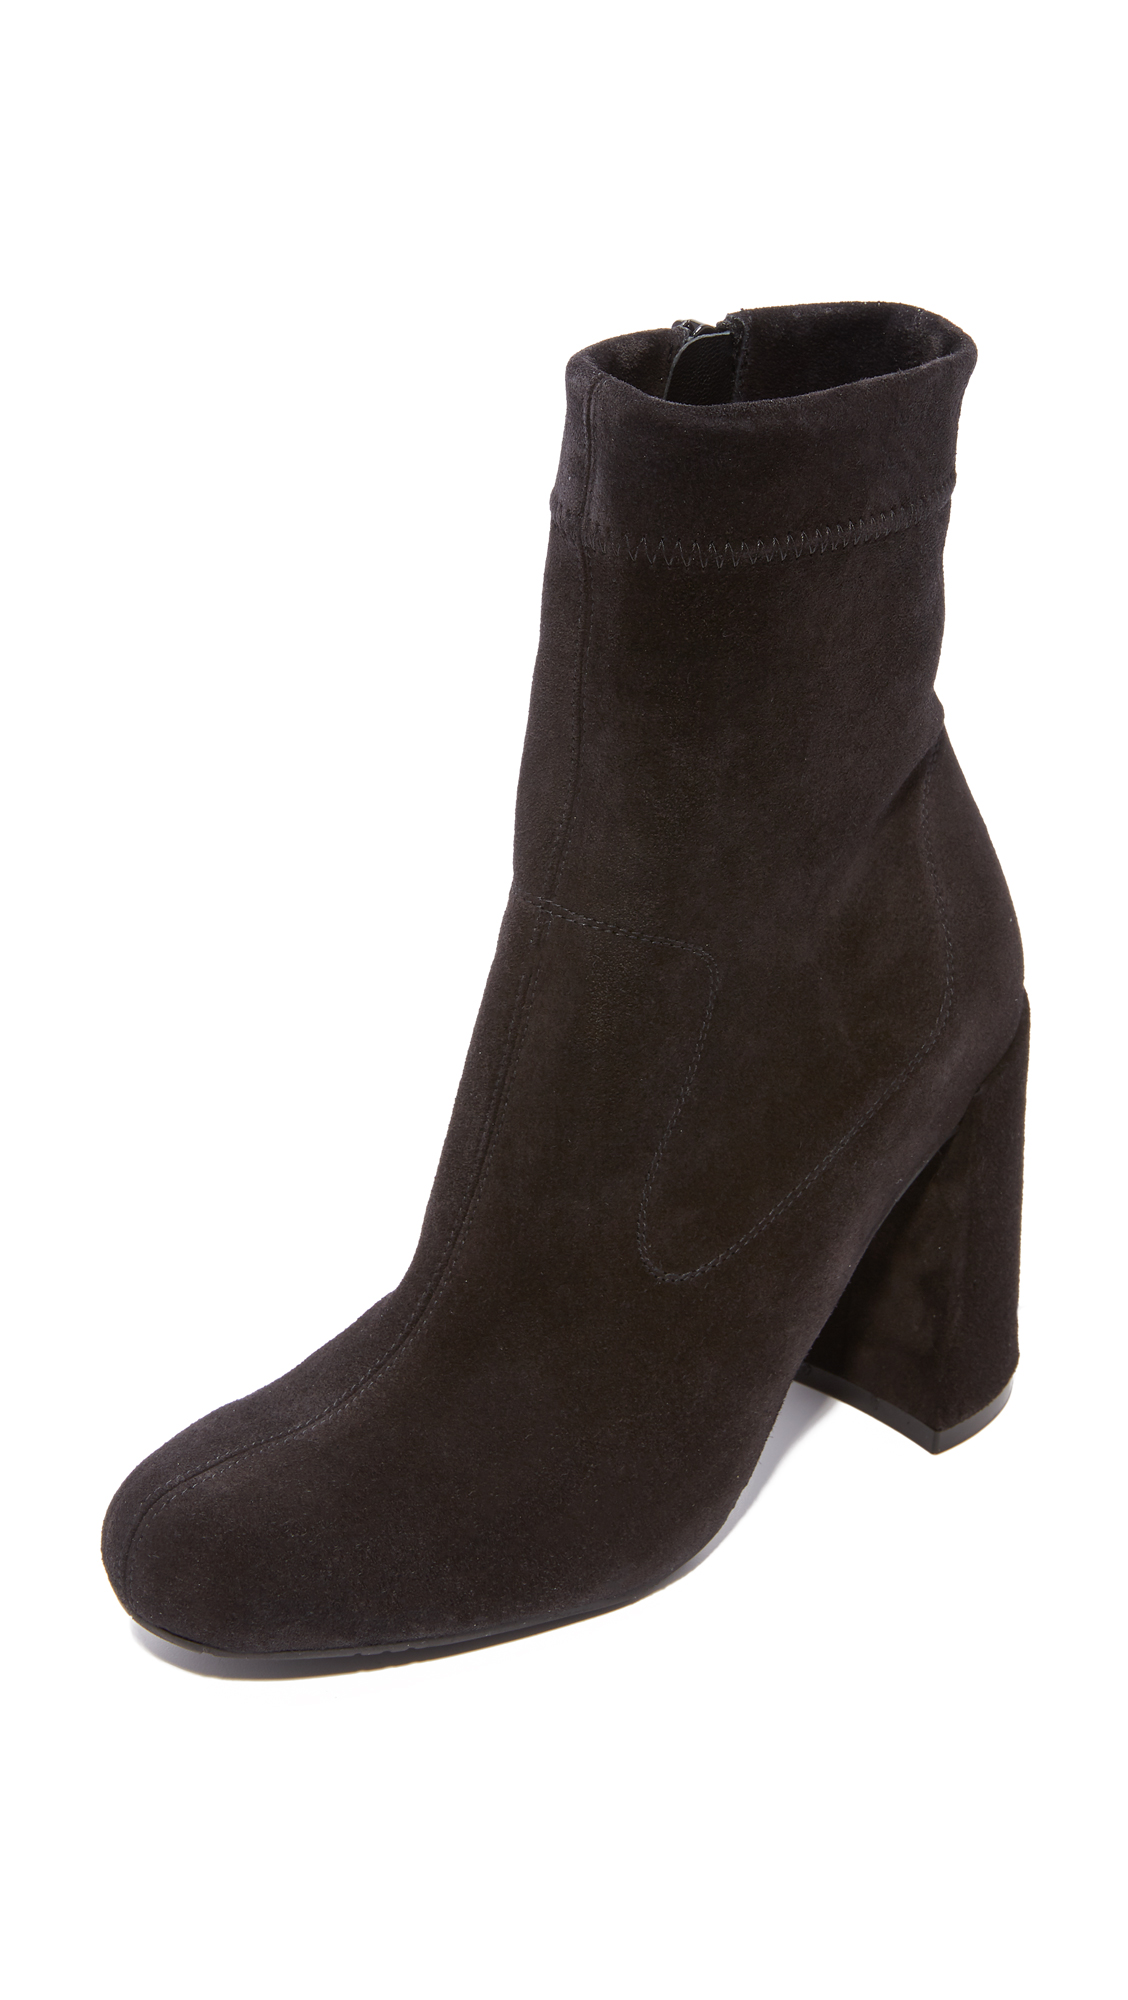 Pedro Garcia Yarrow Ankle Booties - Black